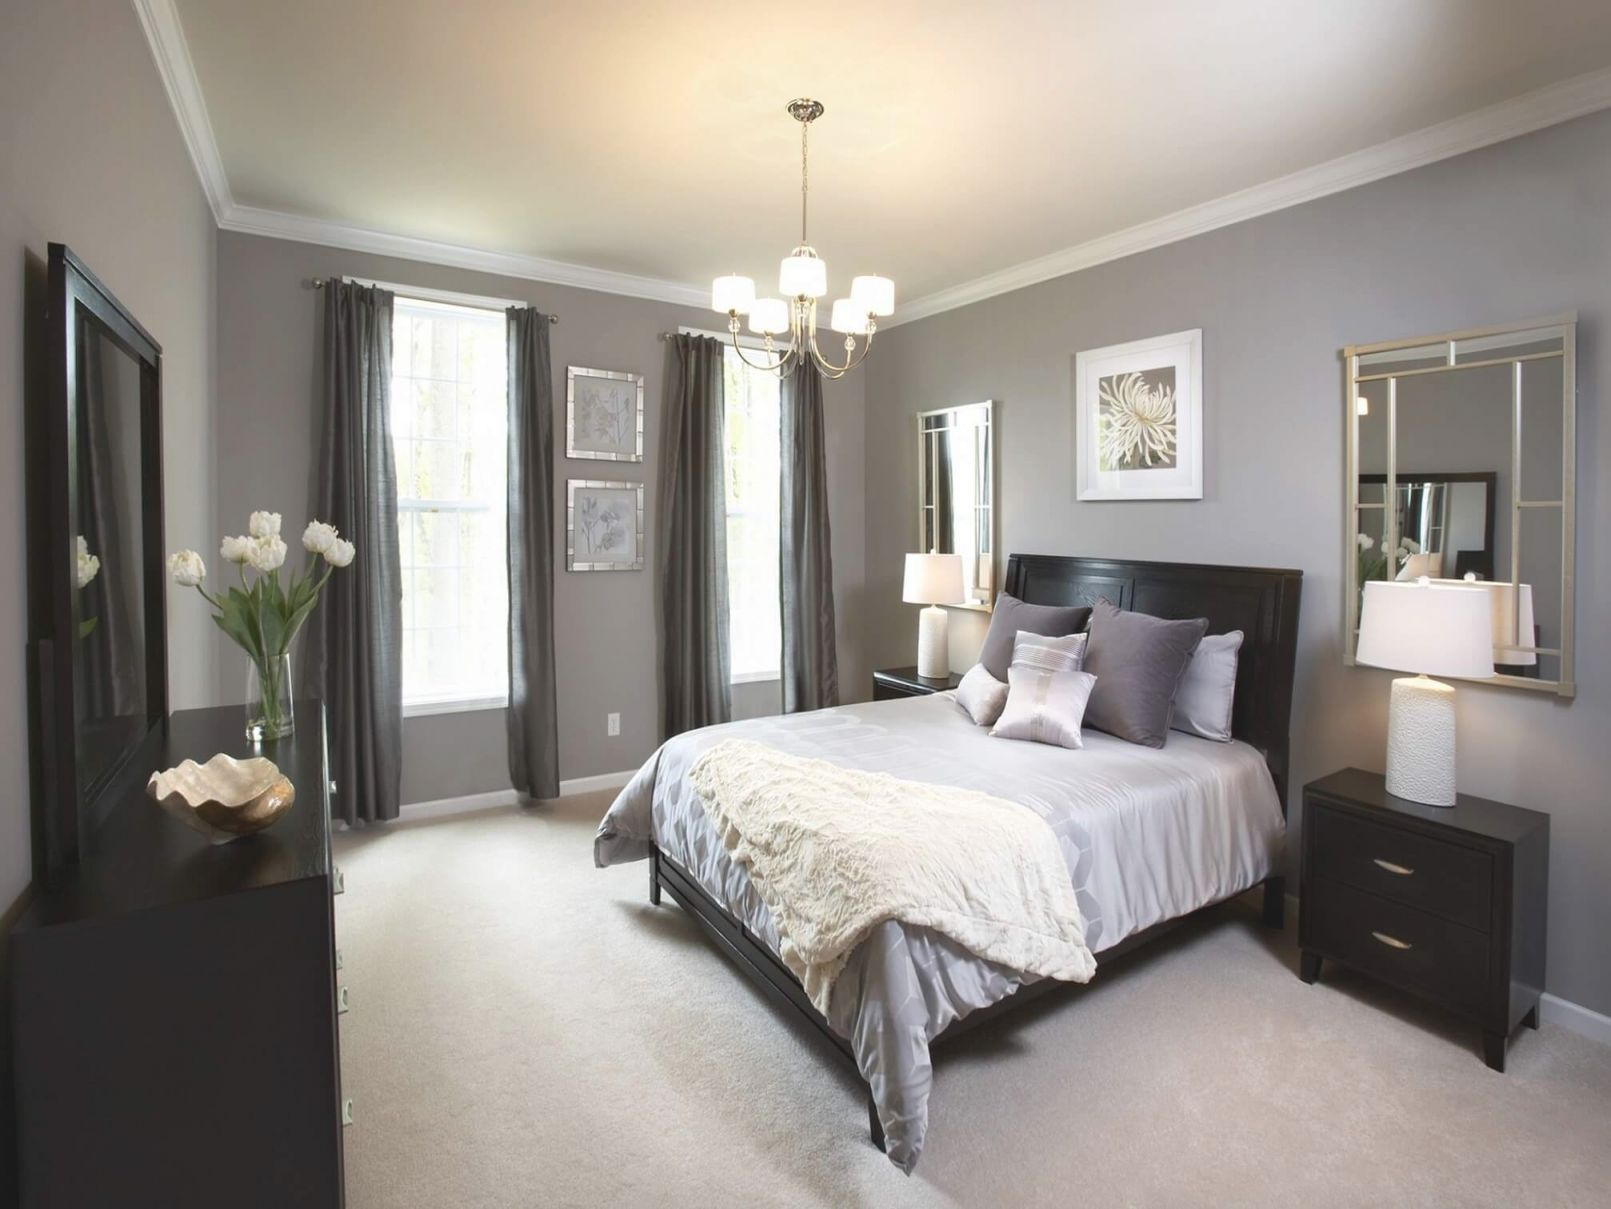 23 Best Grey Bedroom Ideas And Designs For 2020 in Beautiful Black And Grey Bedroom Decorating Ideas